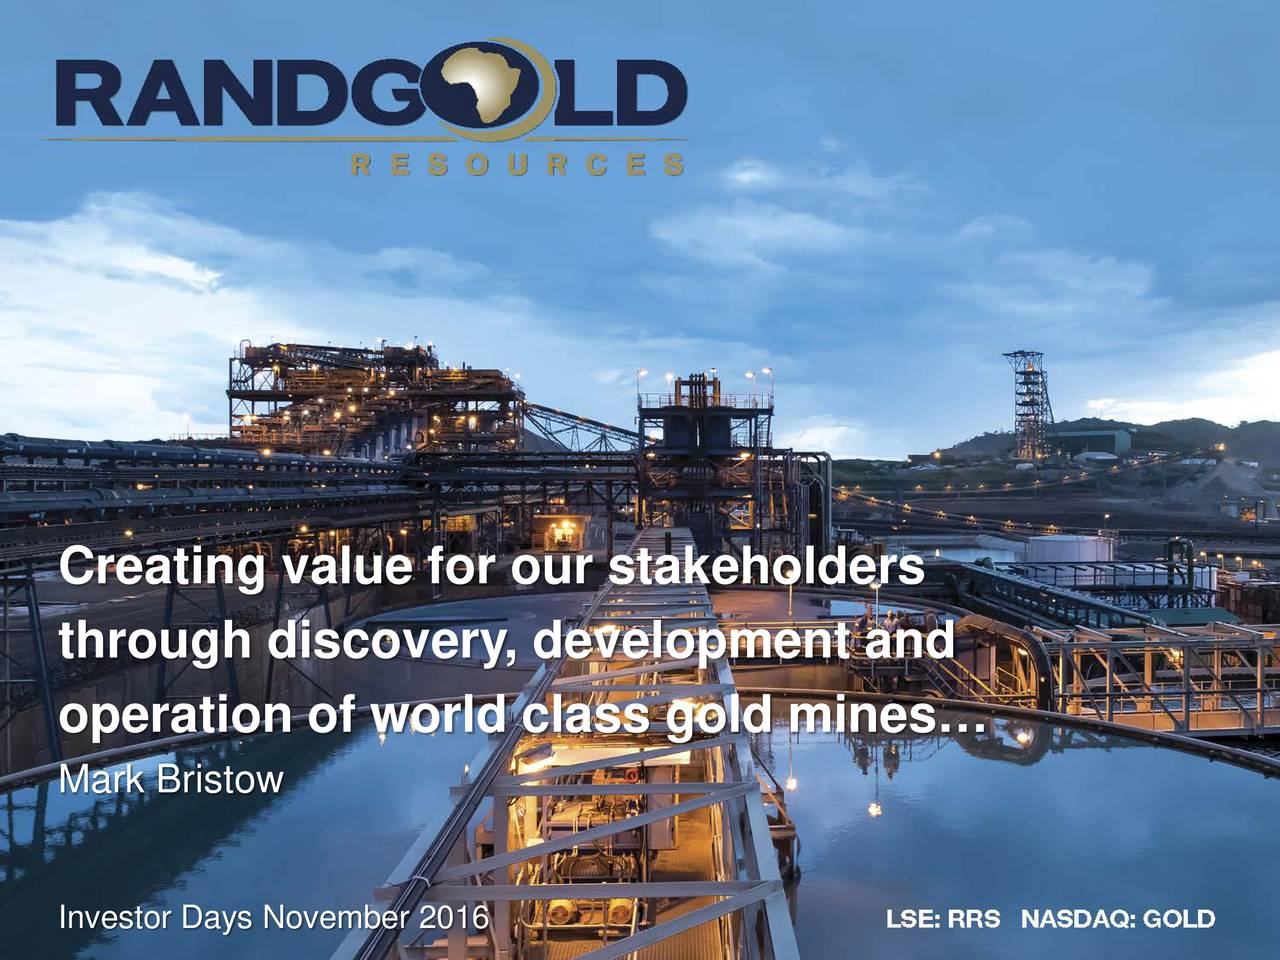 Randgold resources gold investor presentation slideshow through discovery development and operation of world class gold mines mark bristow investor days november buycottarizona